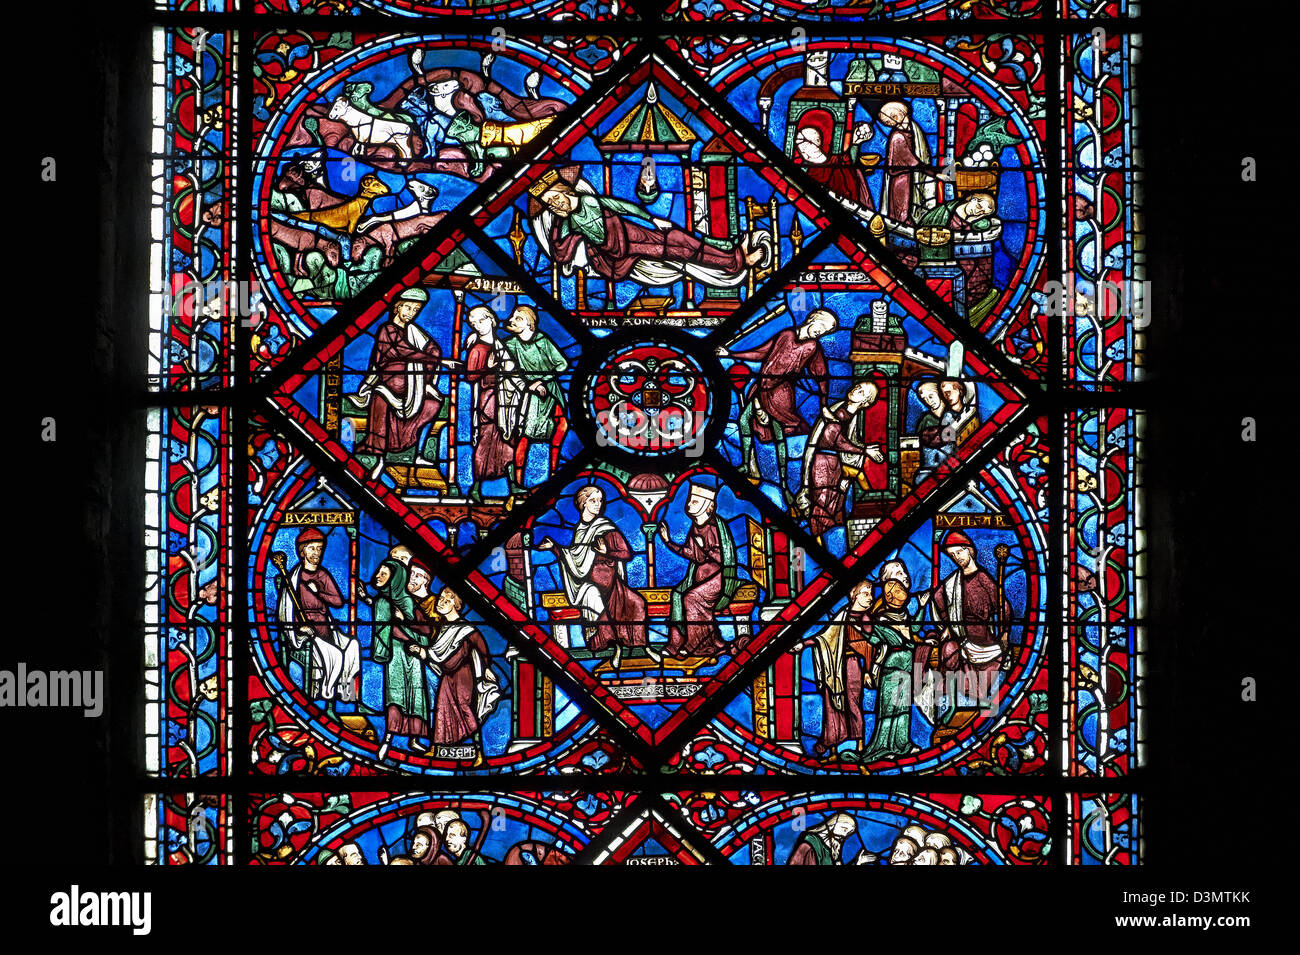 Medieval Windows of the Gothic Cathedral of Chartres, France- dedicated to Joseph the Patriach . - Stock Image